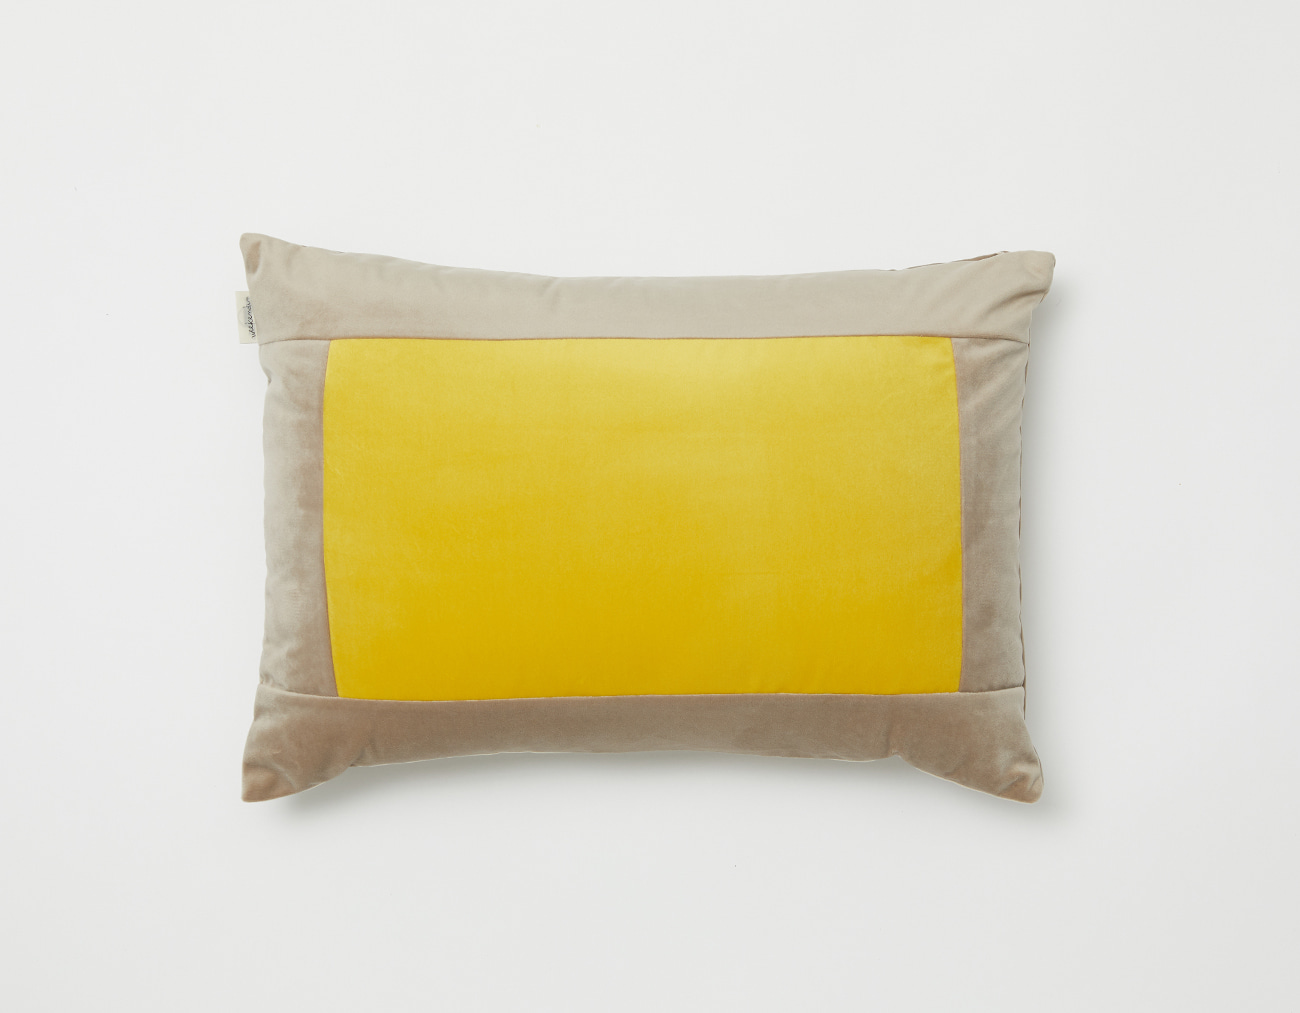 SQUARE VELVET CUSHION_BEIGE/YELLOW